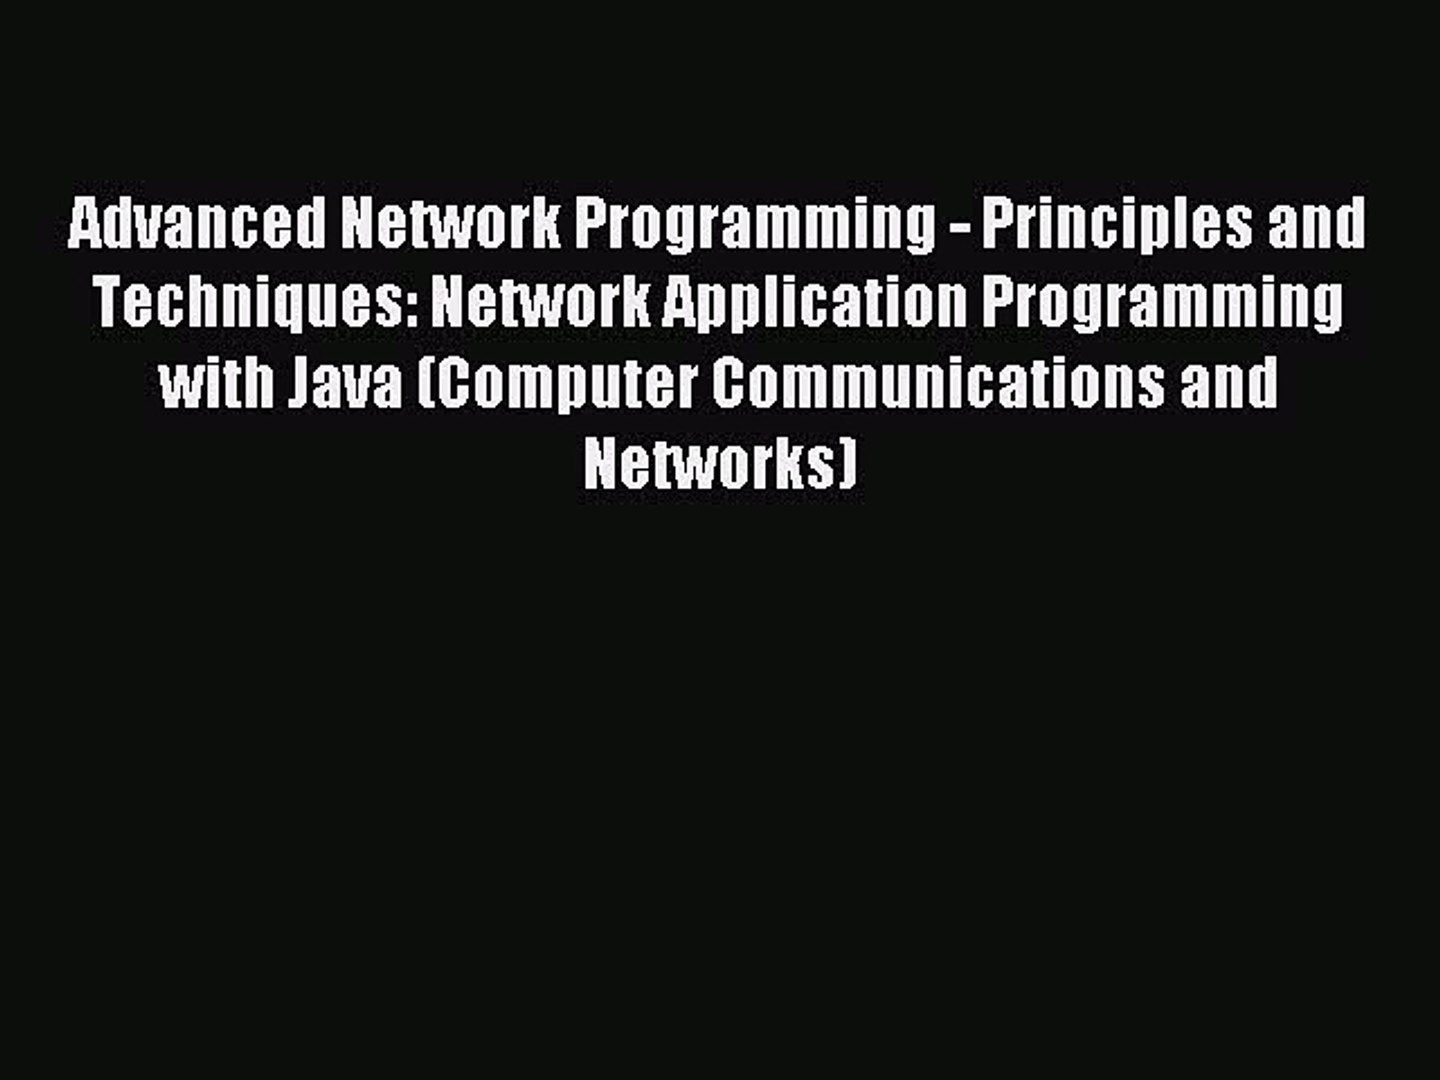 Advanced Network Programming – Principles and Techniques: Network Application Programming with Java